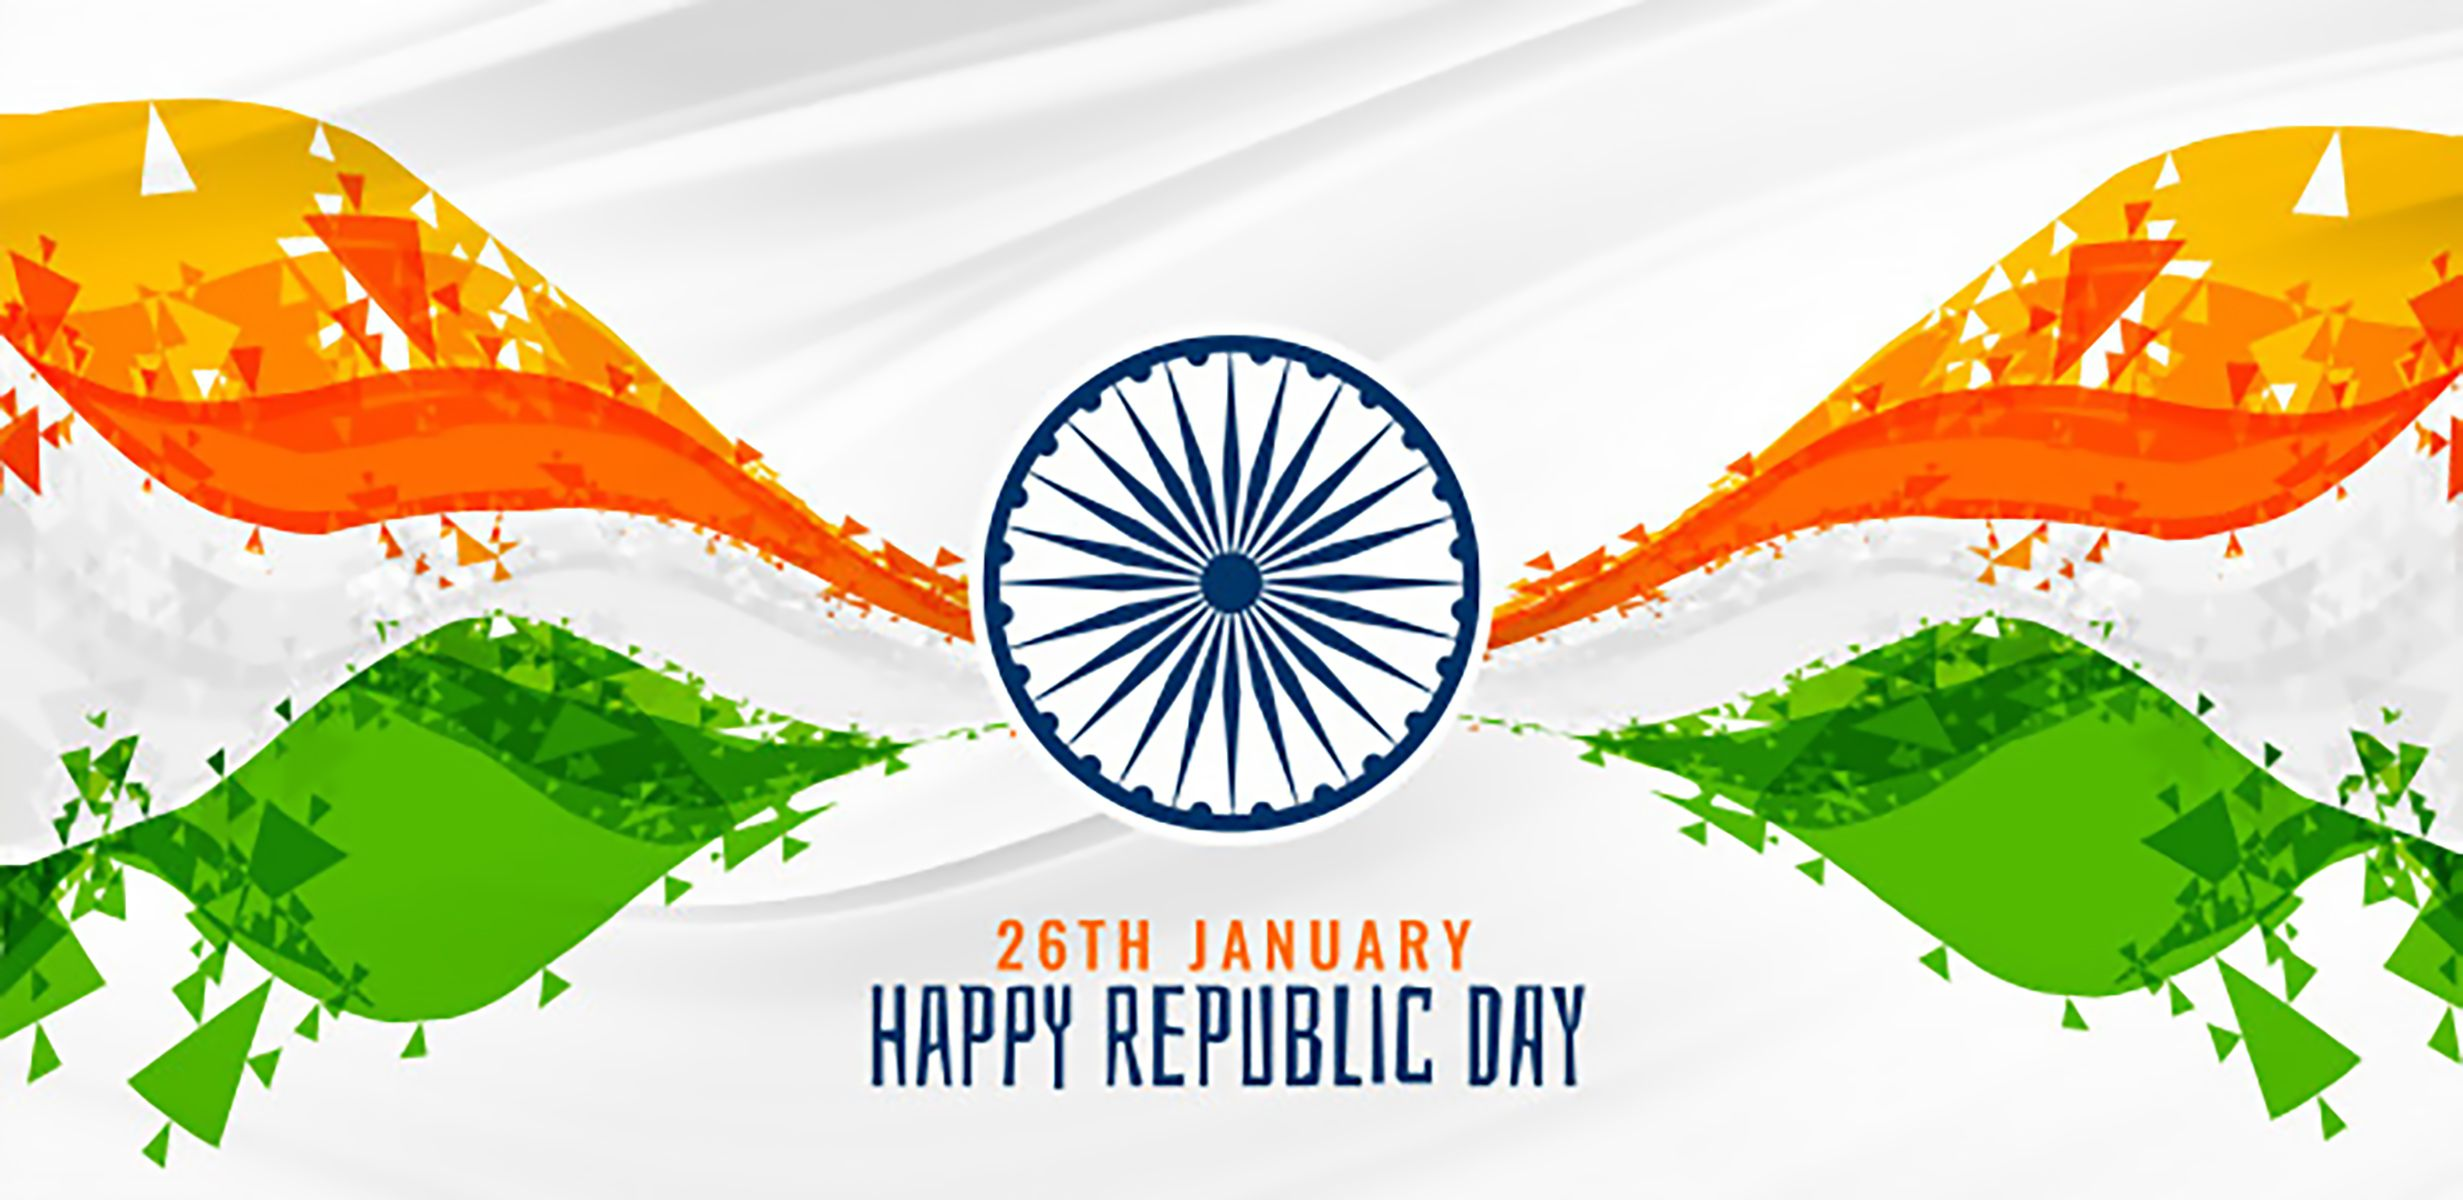 Happy Republic Day Hd Image Download In 2021 Happy Republic Day Republic Day Republic Day Images